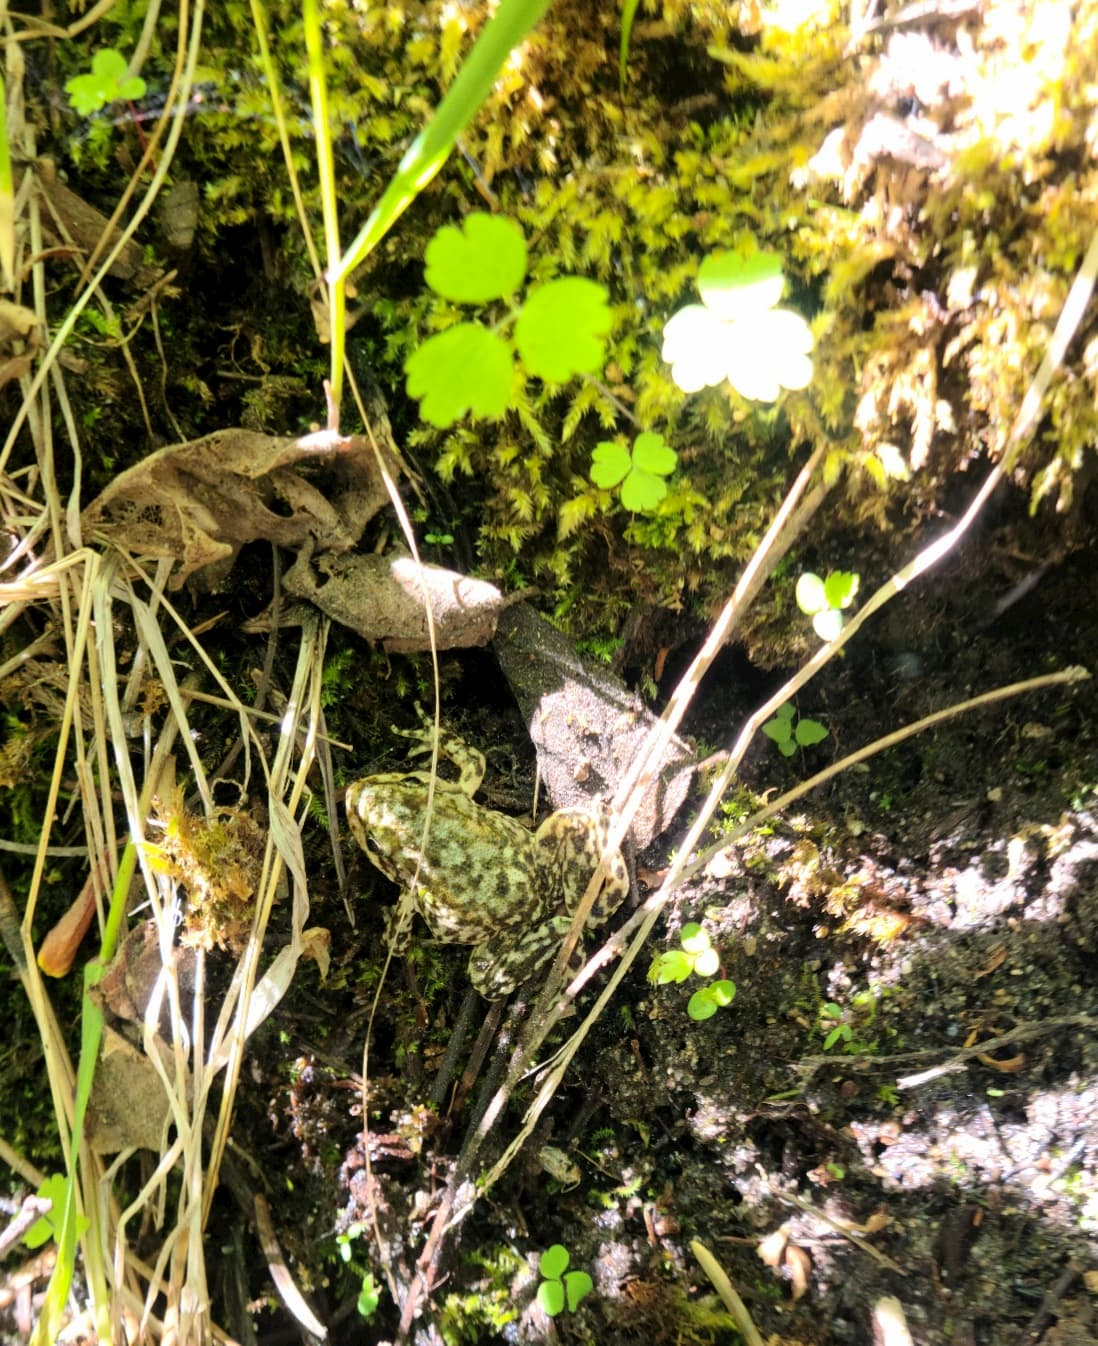 Tadpoles and froglets